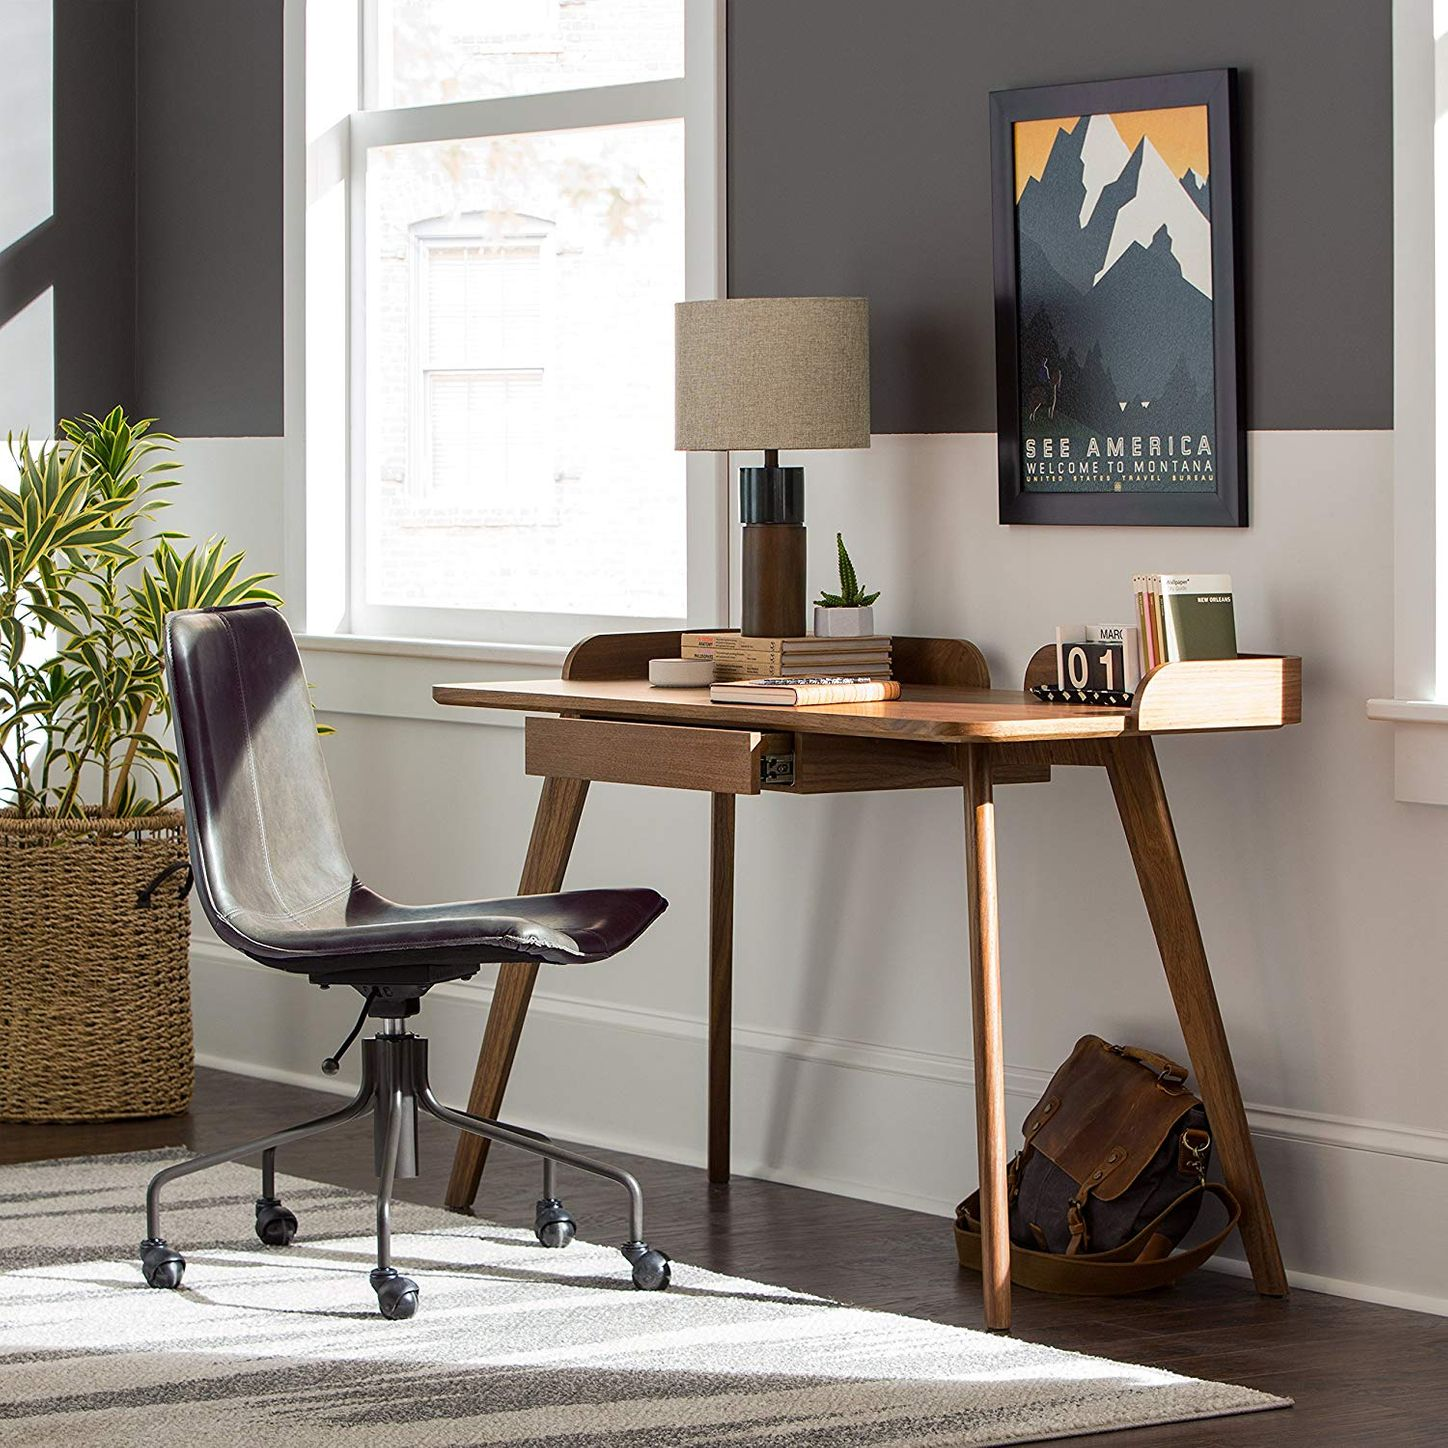 29 Cheap (But ExpensiveLooking) Desks You Can Buy on